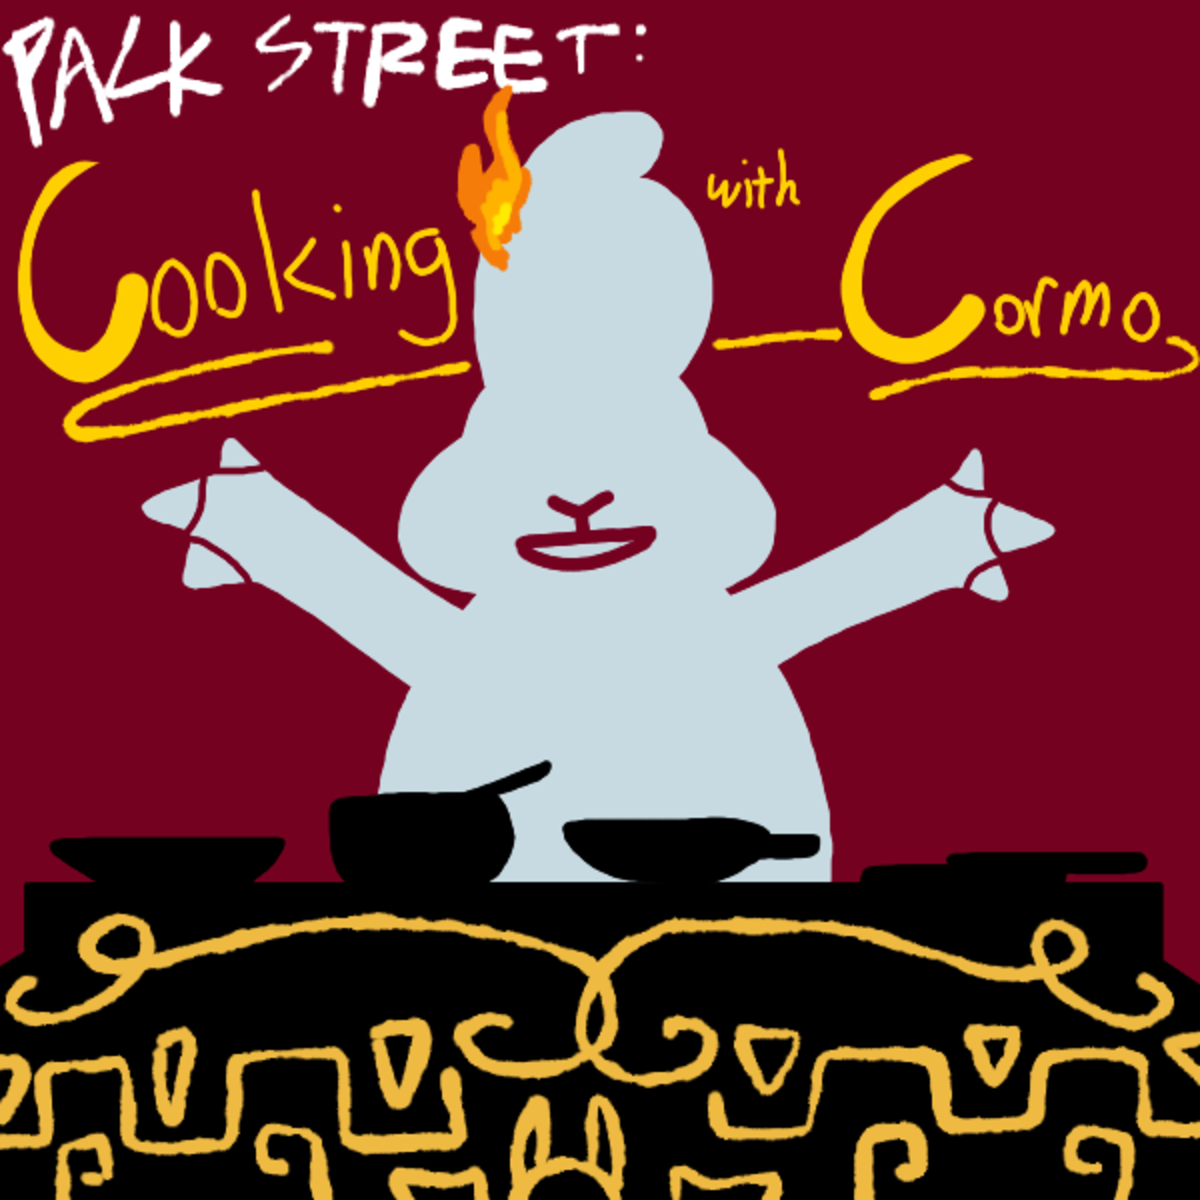 New Packstreet: Cooking With Cormo. Link to story: Bring to a boil, let stew, serve hot... since when is gideon gleeful a furry?